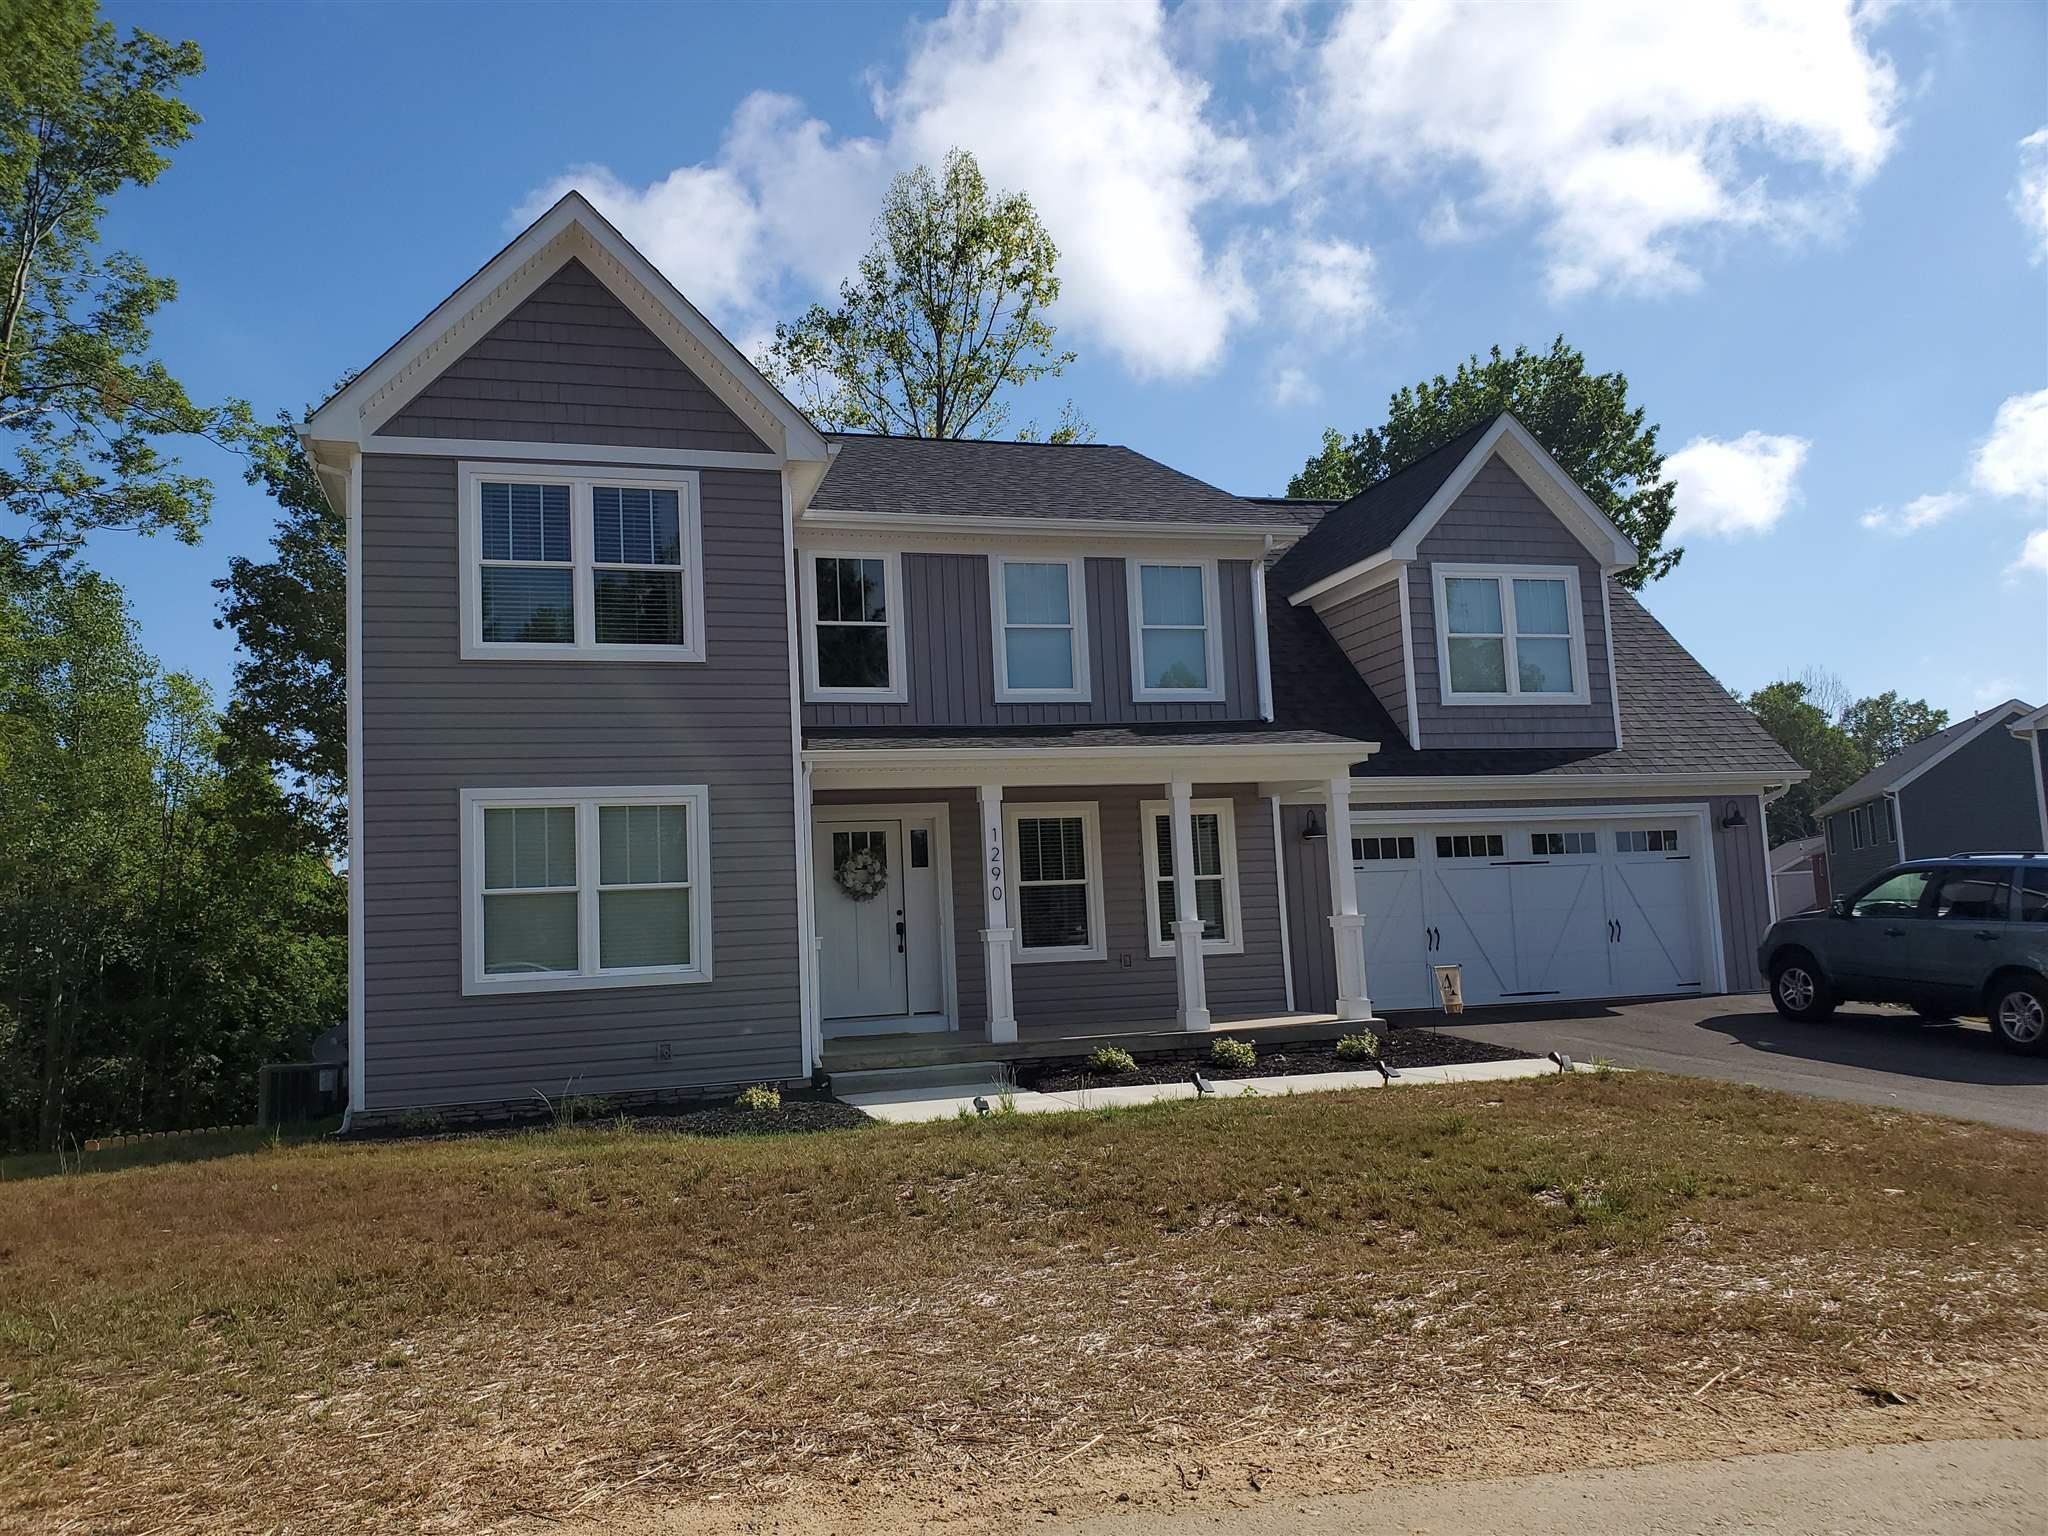 Craftsman Style Charmer with loads of curb appeal. Covered country style front porch. Beautiful Open floor plan. 4 BD, 2 1/2 BTHS, , fireplace in living room. Fabulous master suite & large attached 2-car garage all on a full, unfinished basement allowing room for future expansion. Cul-de-sac street close to walking trails, community playground, minutes to shopping & minutes to Blacksburg & easy commute to Salem & Roanoke. Buy Now and pick out all your favorite colors